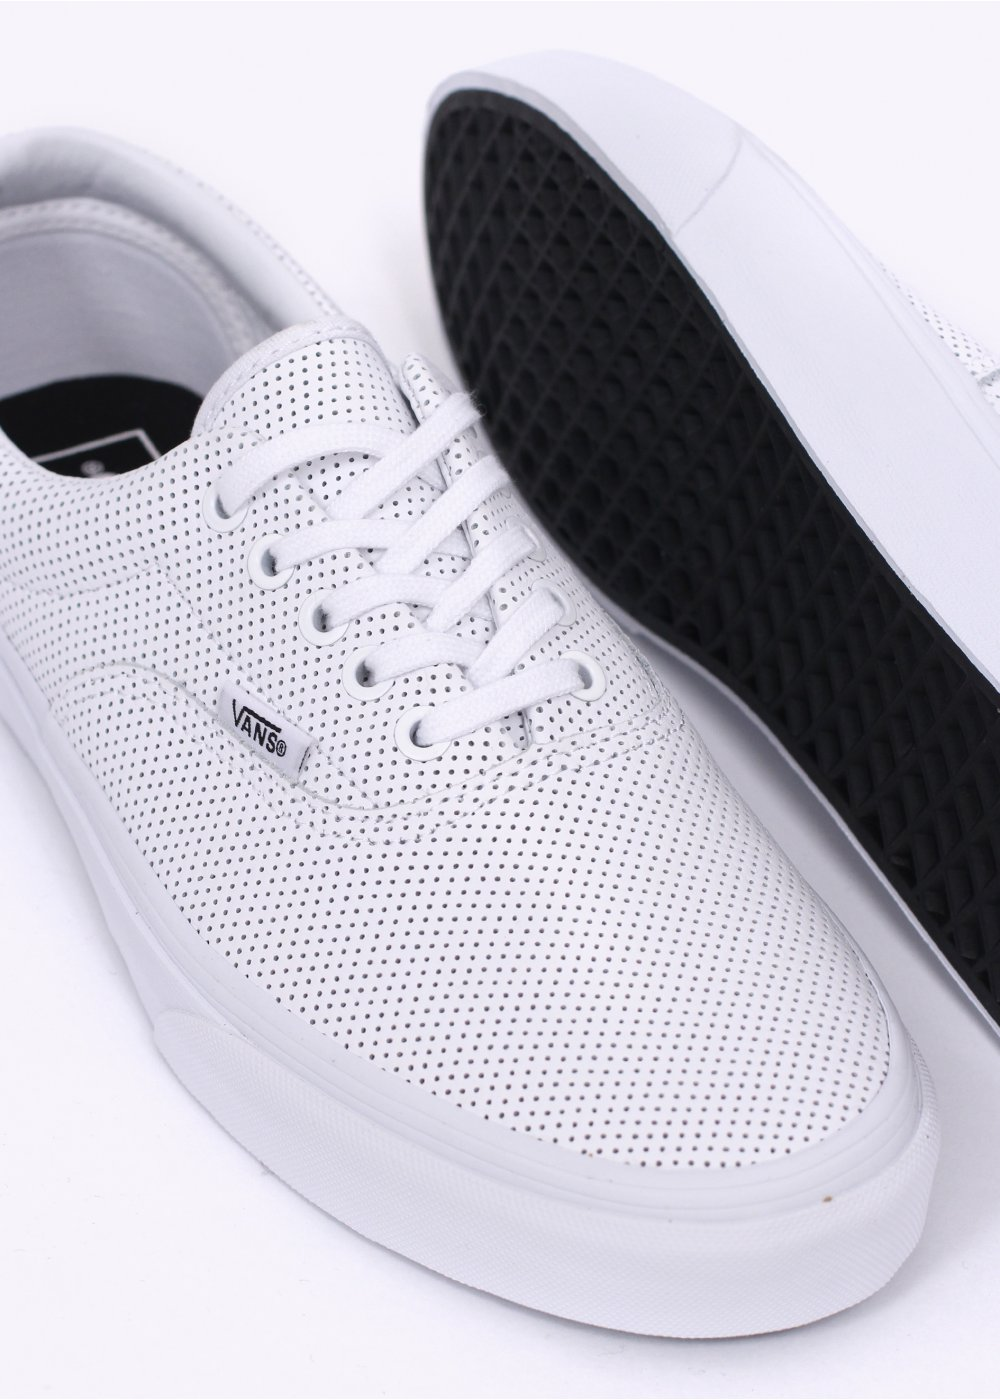 870d1887dd Vans Era Perforated Leather - True White